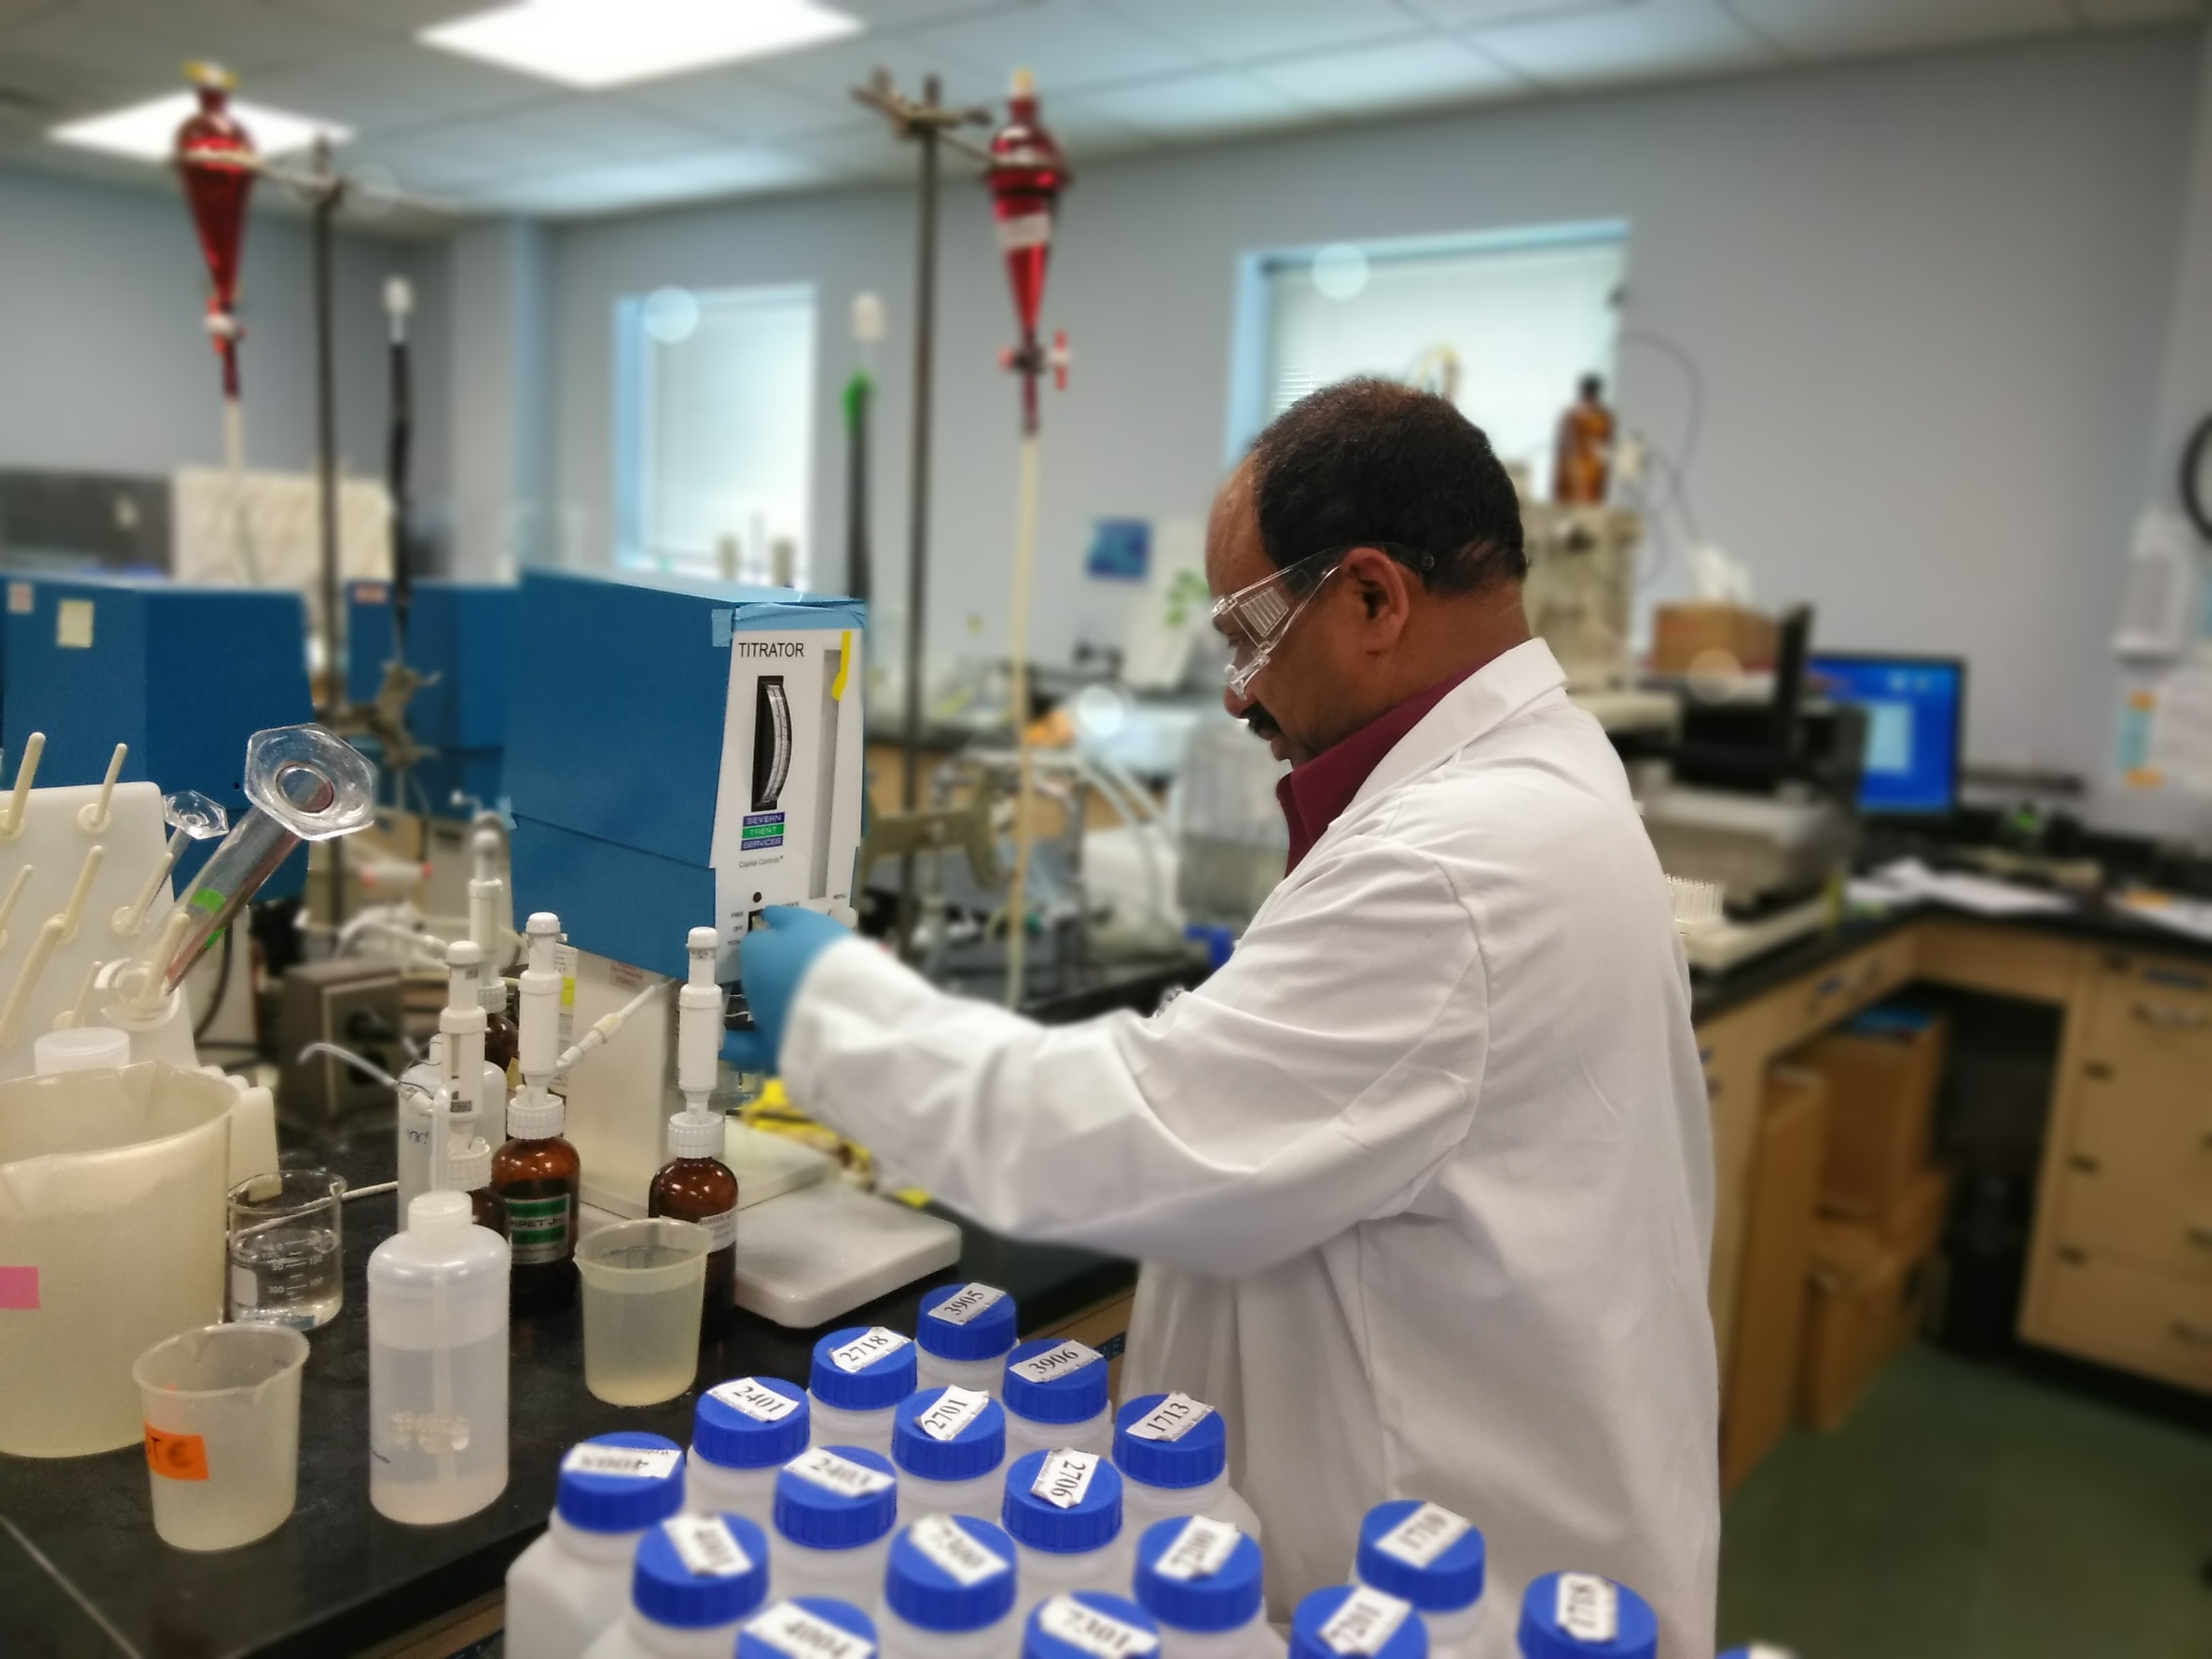 A photo of a scientist in a white lab coat, rubber gloves, and safety glasses uses a machine to test a water sample.